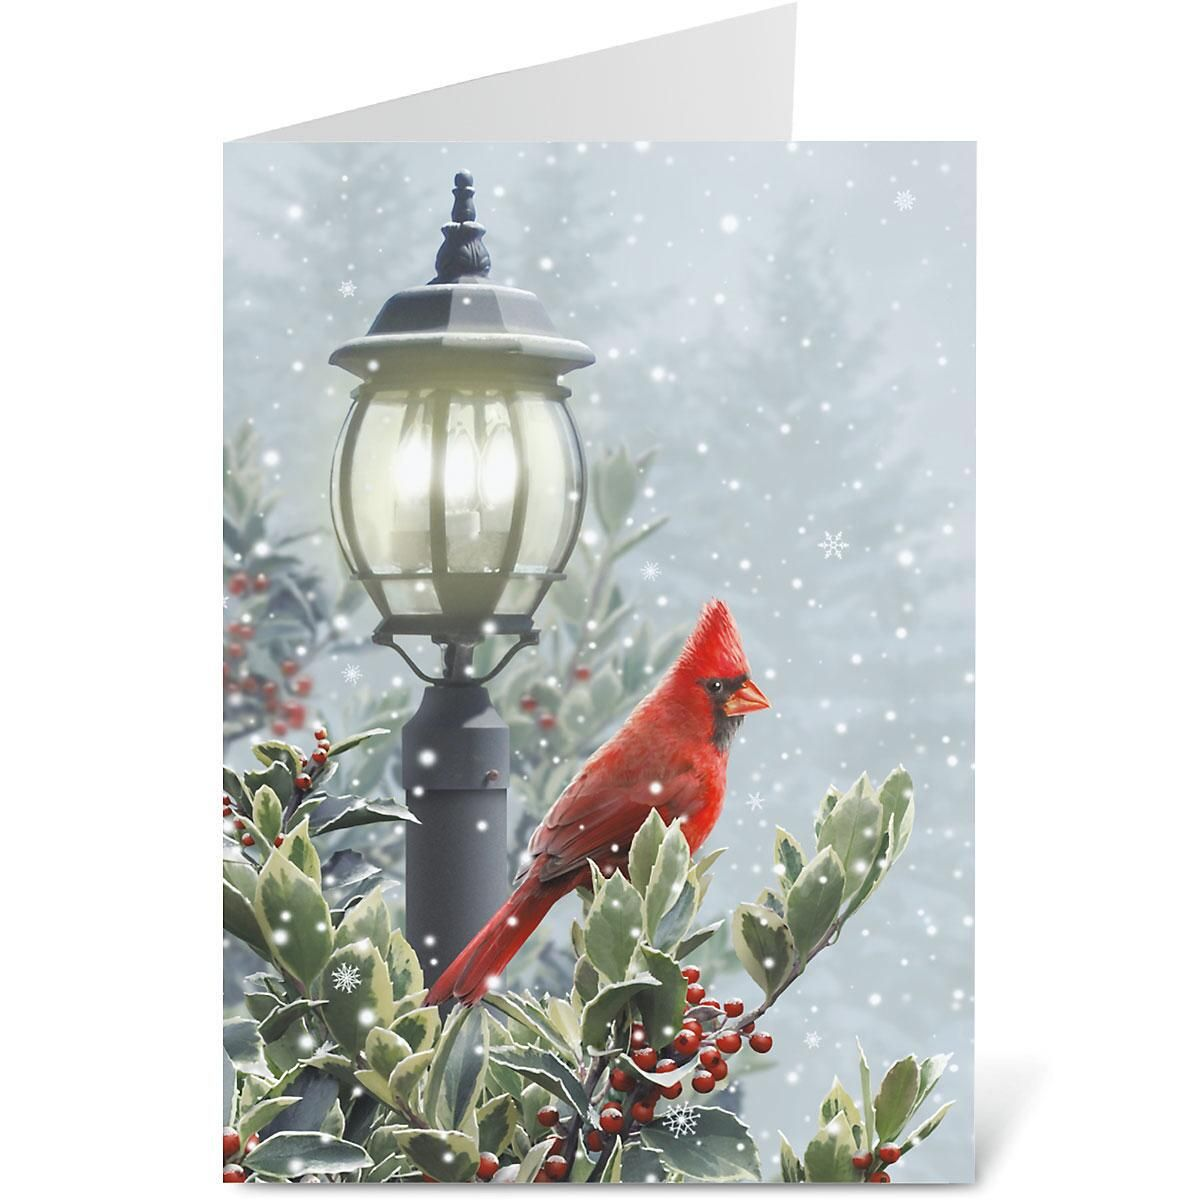 Winter Solitude Nonpersonalized Christmas Cards - Set of 72